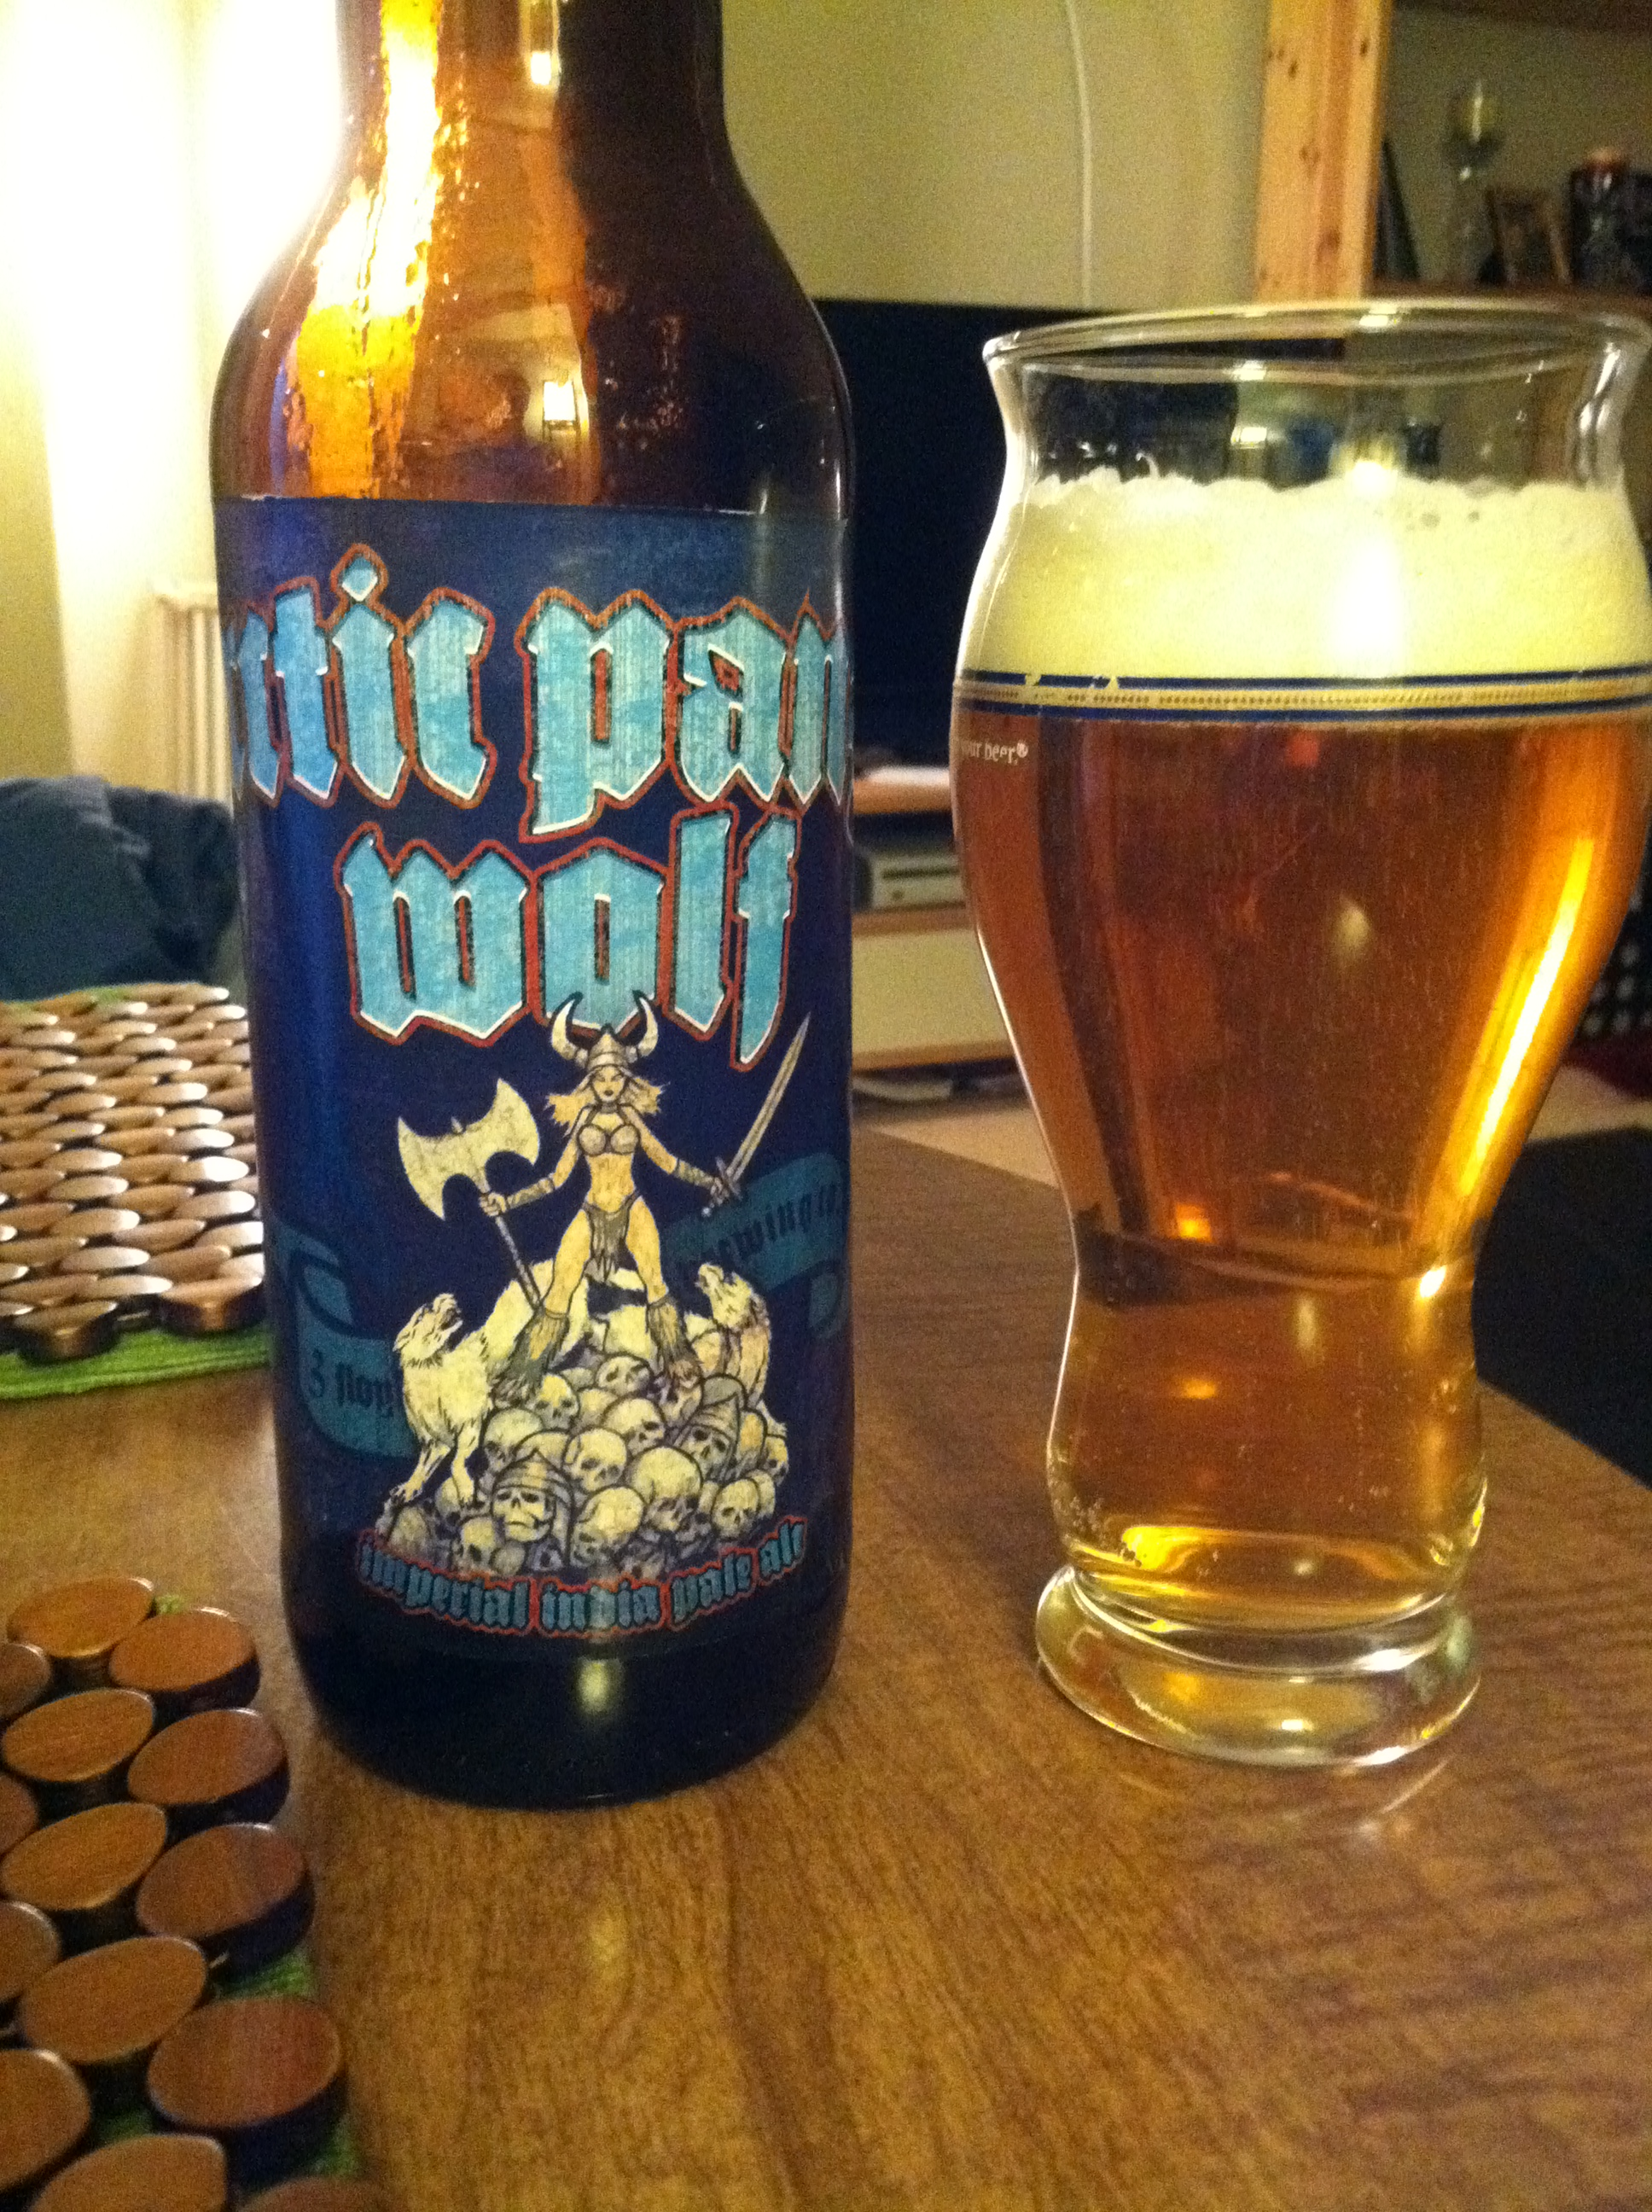 3 Floyds Arctic Panzer Wolf Imperial IPA 9 Abv